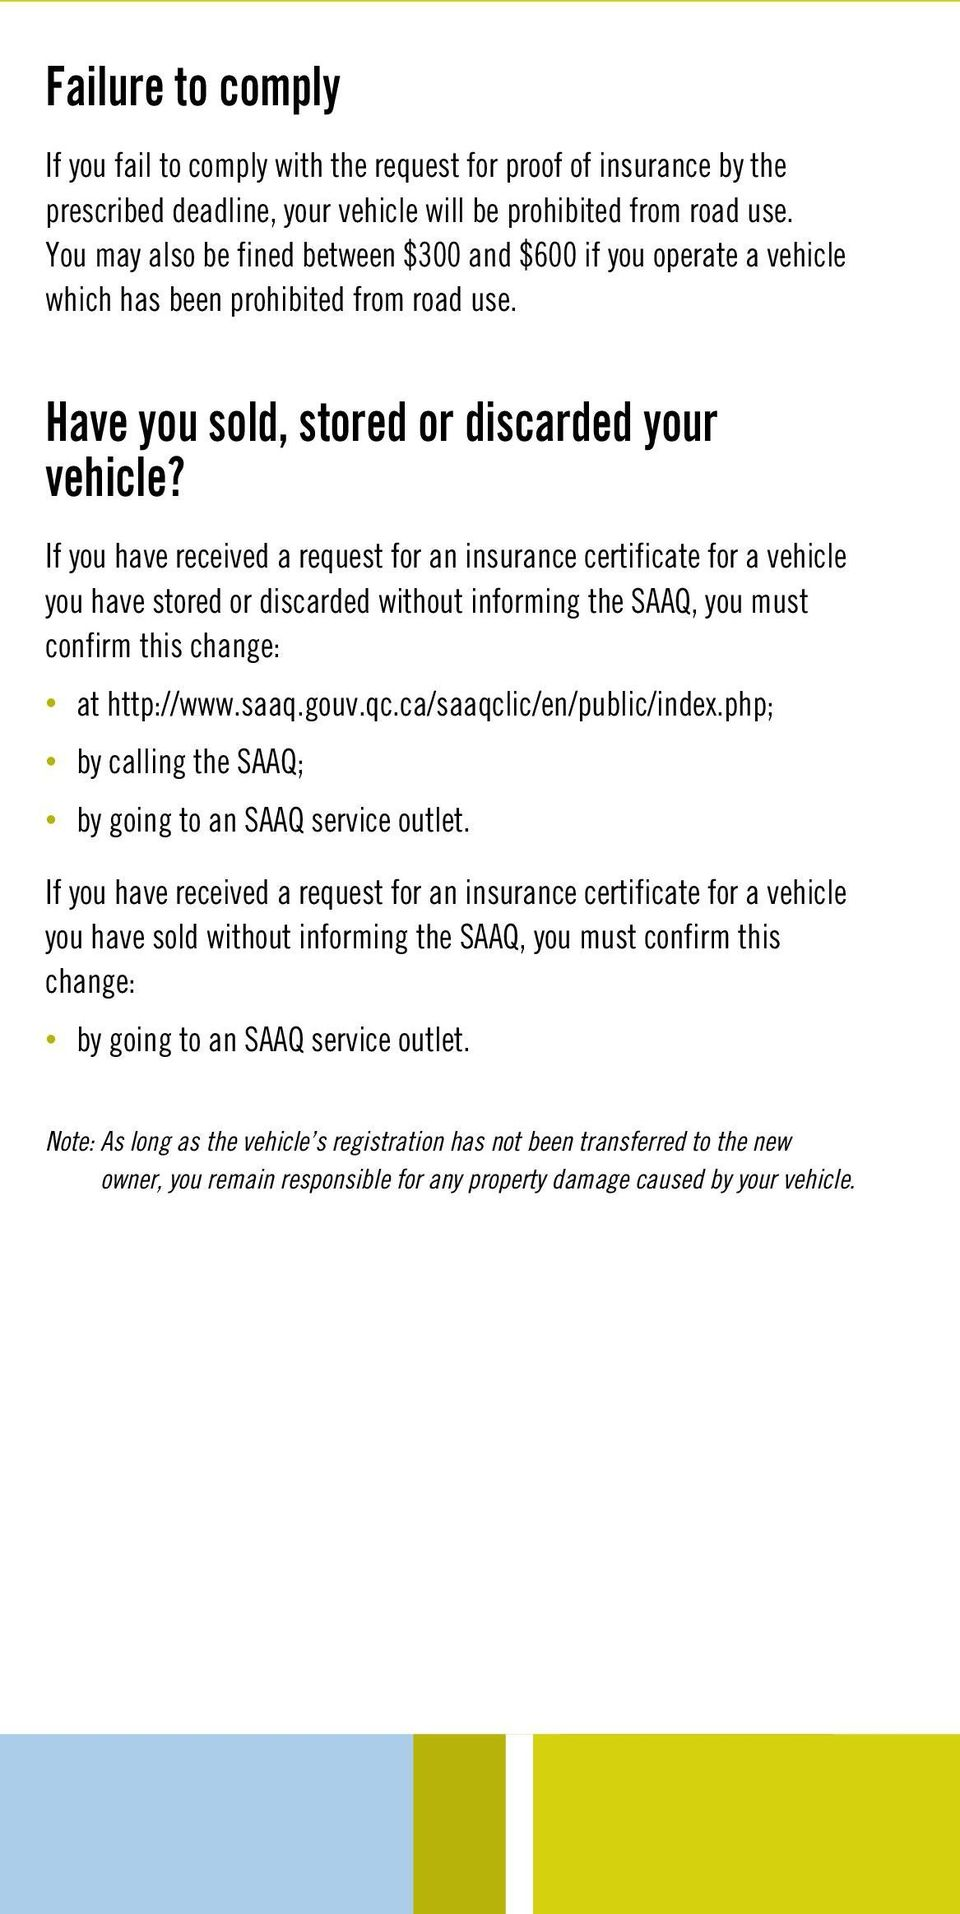 If you have received a request for an insurance certificate for a vehicle you have stored or discarded without informing the SAAQ, you must confirm this change: at http://www.saaq.gouv.qc.